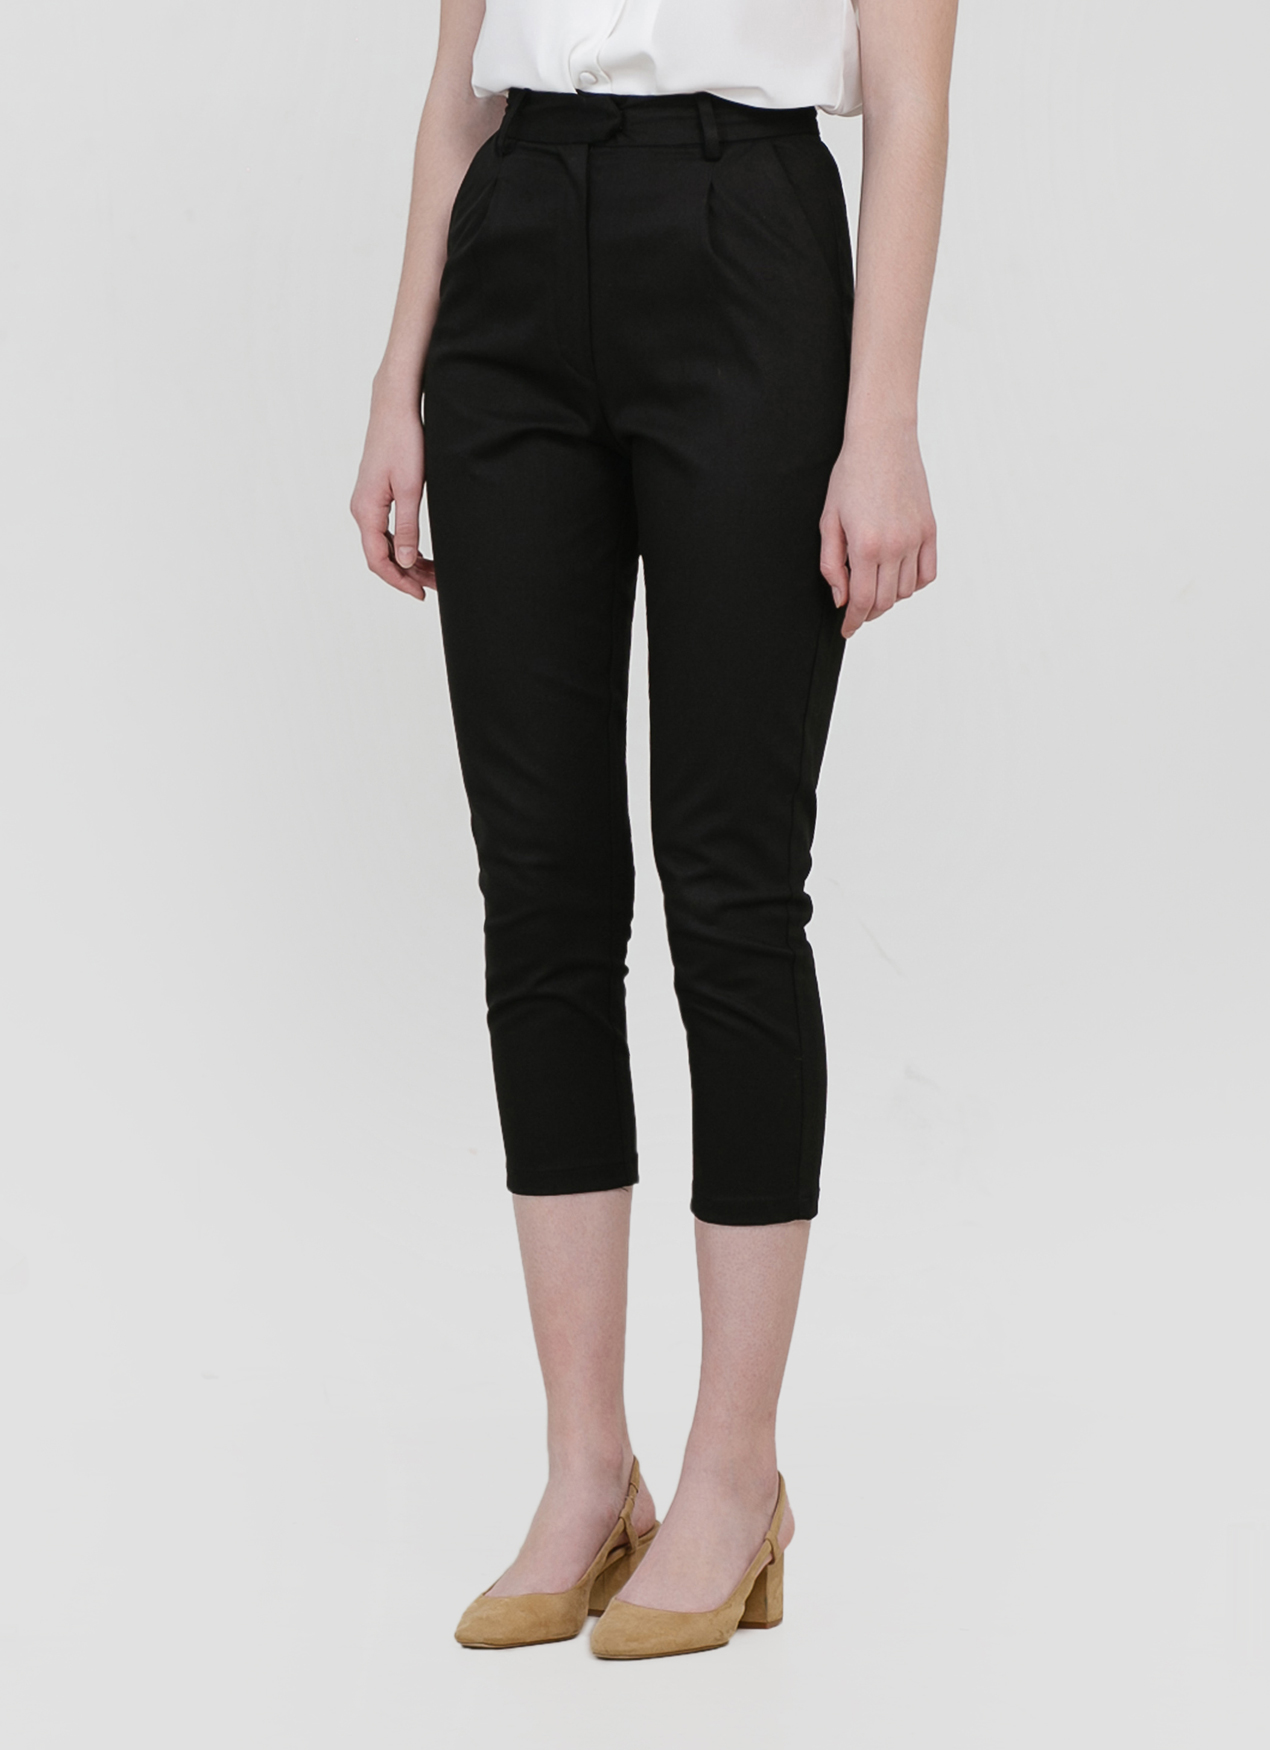 CLOTH INC Yara Cropped Slim Pants - Black